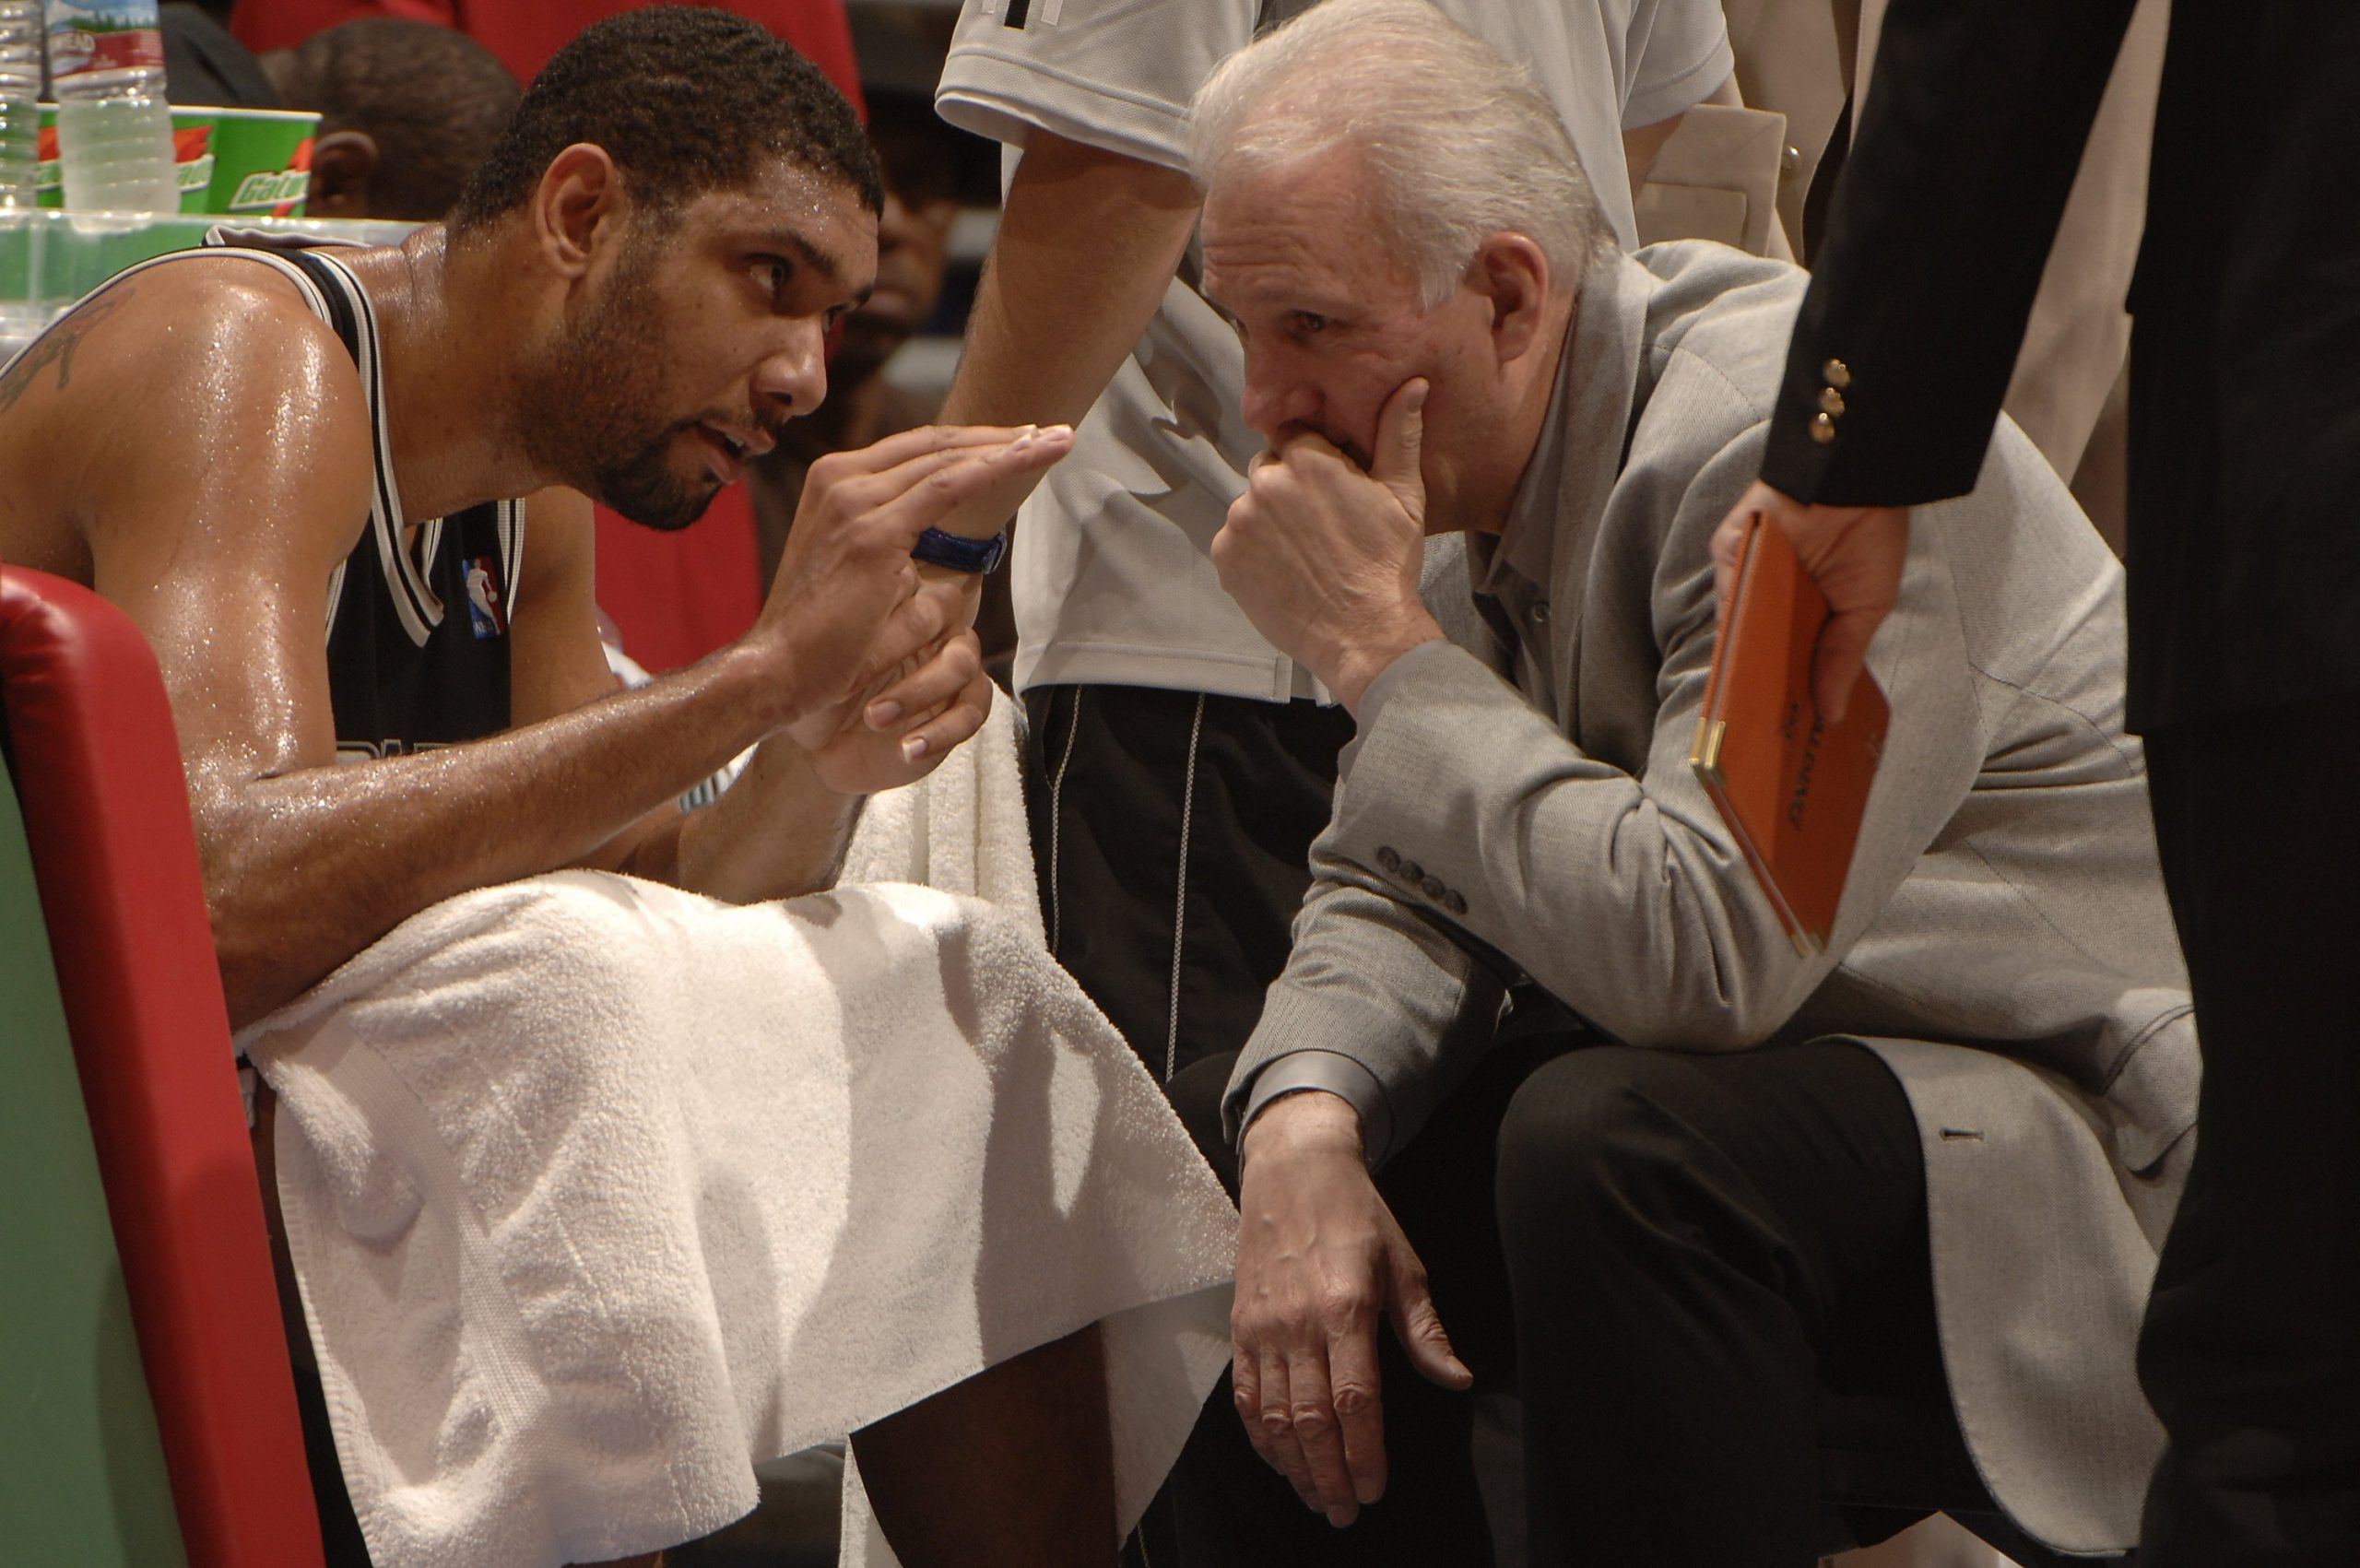 Tim Duncan, #21, of the Spurs talks with Head Coach Gregg Popovich during a game against the Los Angeles Clippers in 2006 in Los Angeles, California. Photo courtesy of San Antonio Spurs (Getty).